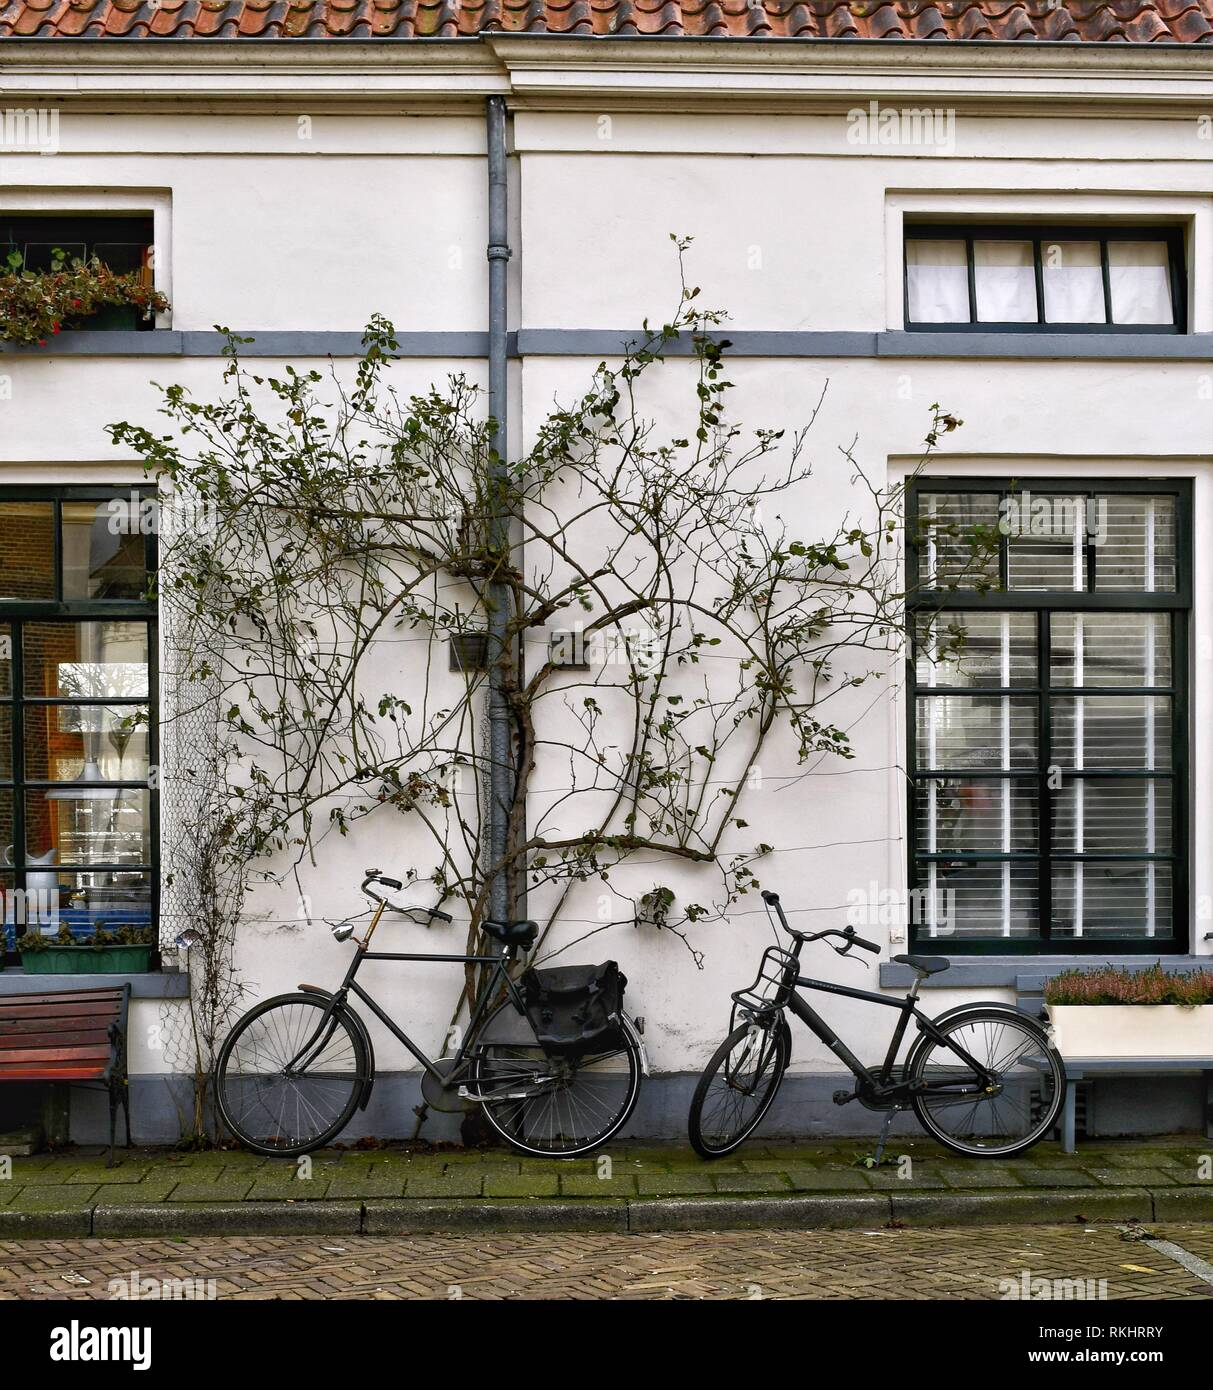 Two bicycles parked against a house in Zwolle in the Netherlands Stock Photo